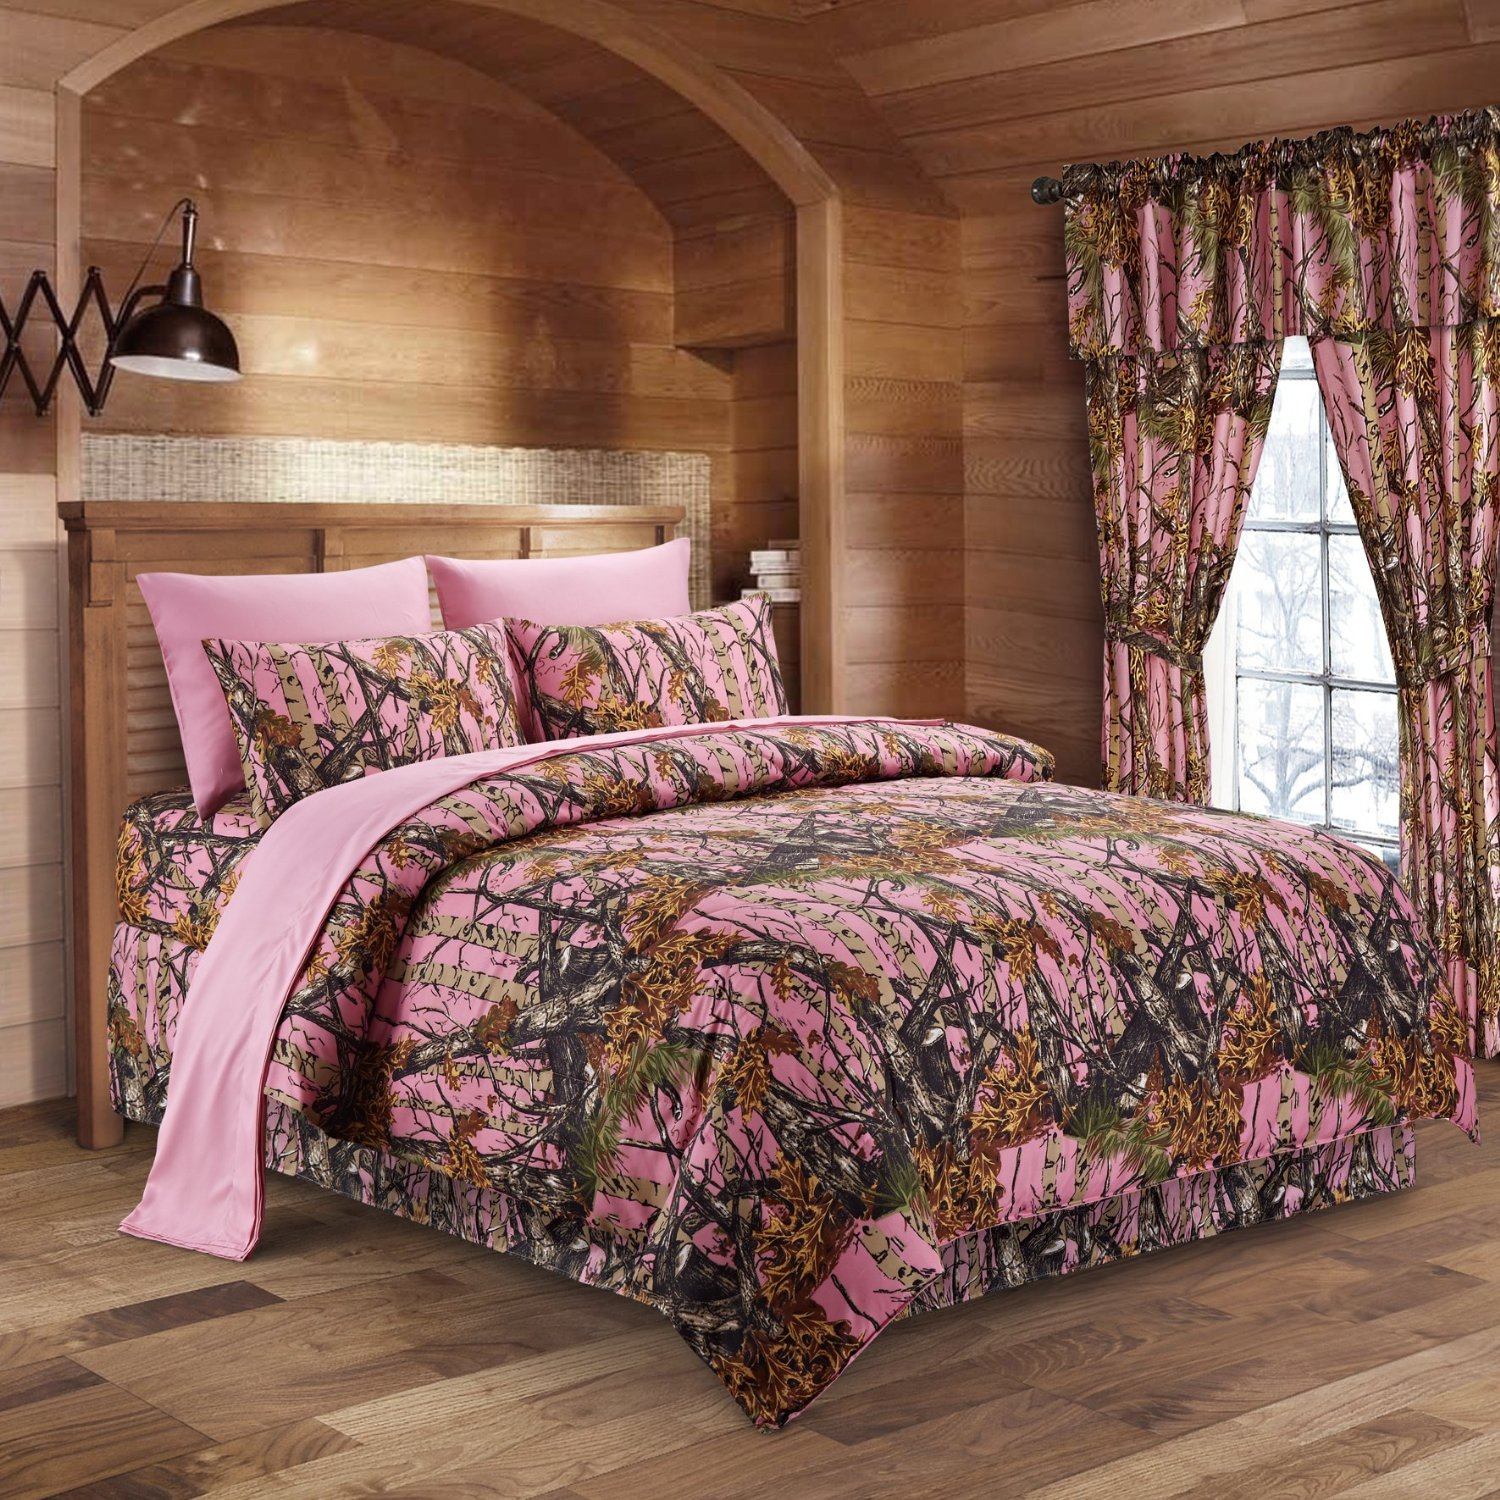 The Woods Pink Camouflage King 8pc Premium Luxury Comforter, SHeet, Pillowcases, and Bedskirt Set by Regal... by Regal Comfort